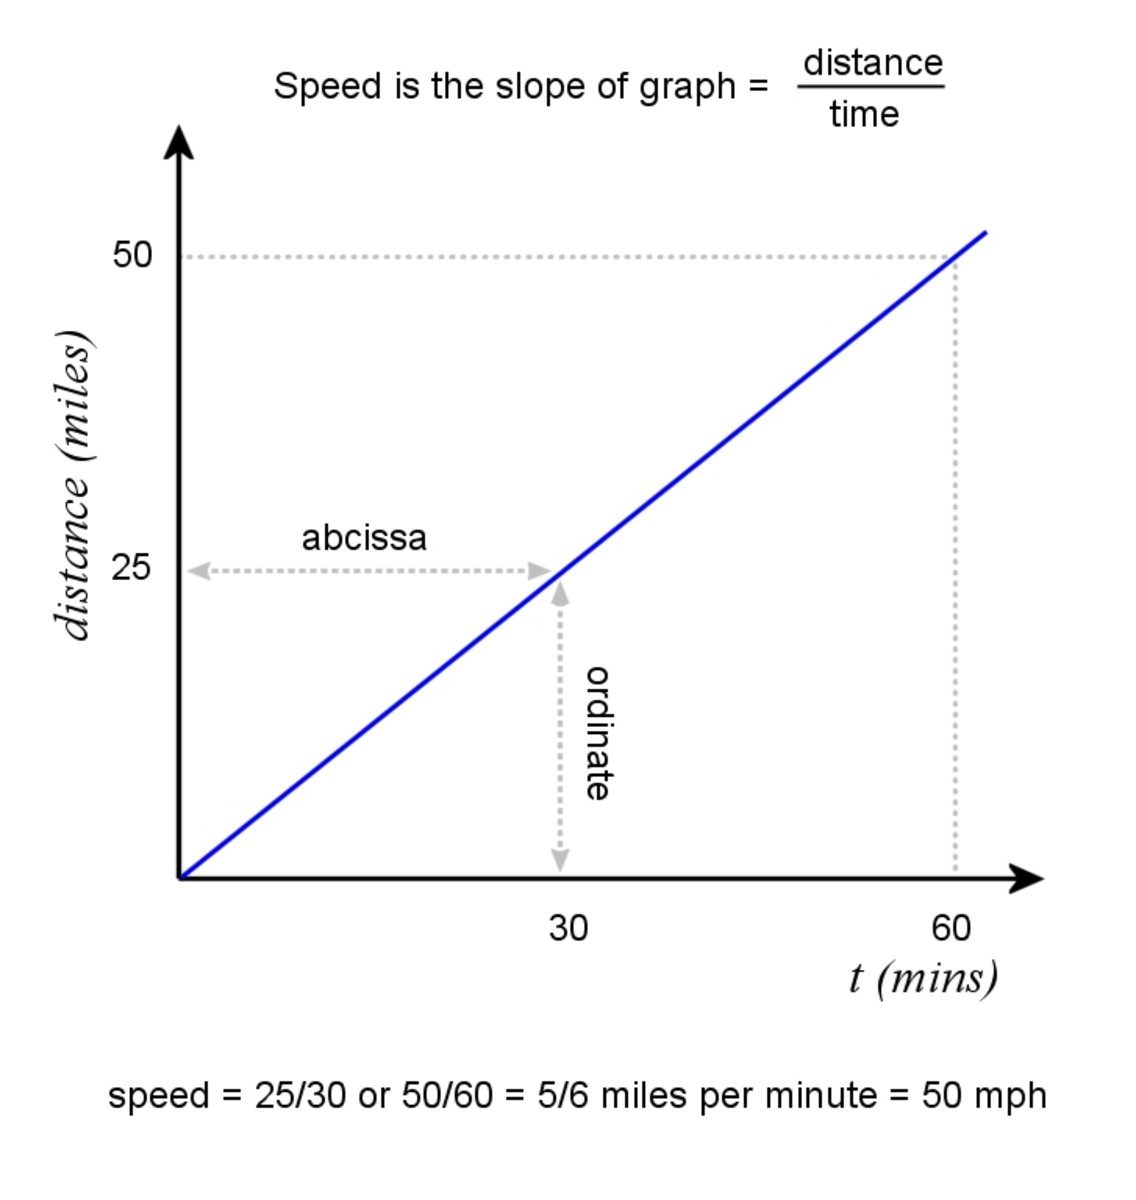 Graph of distance travelled by a vehicle at constant speed is a straight line.